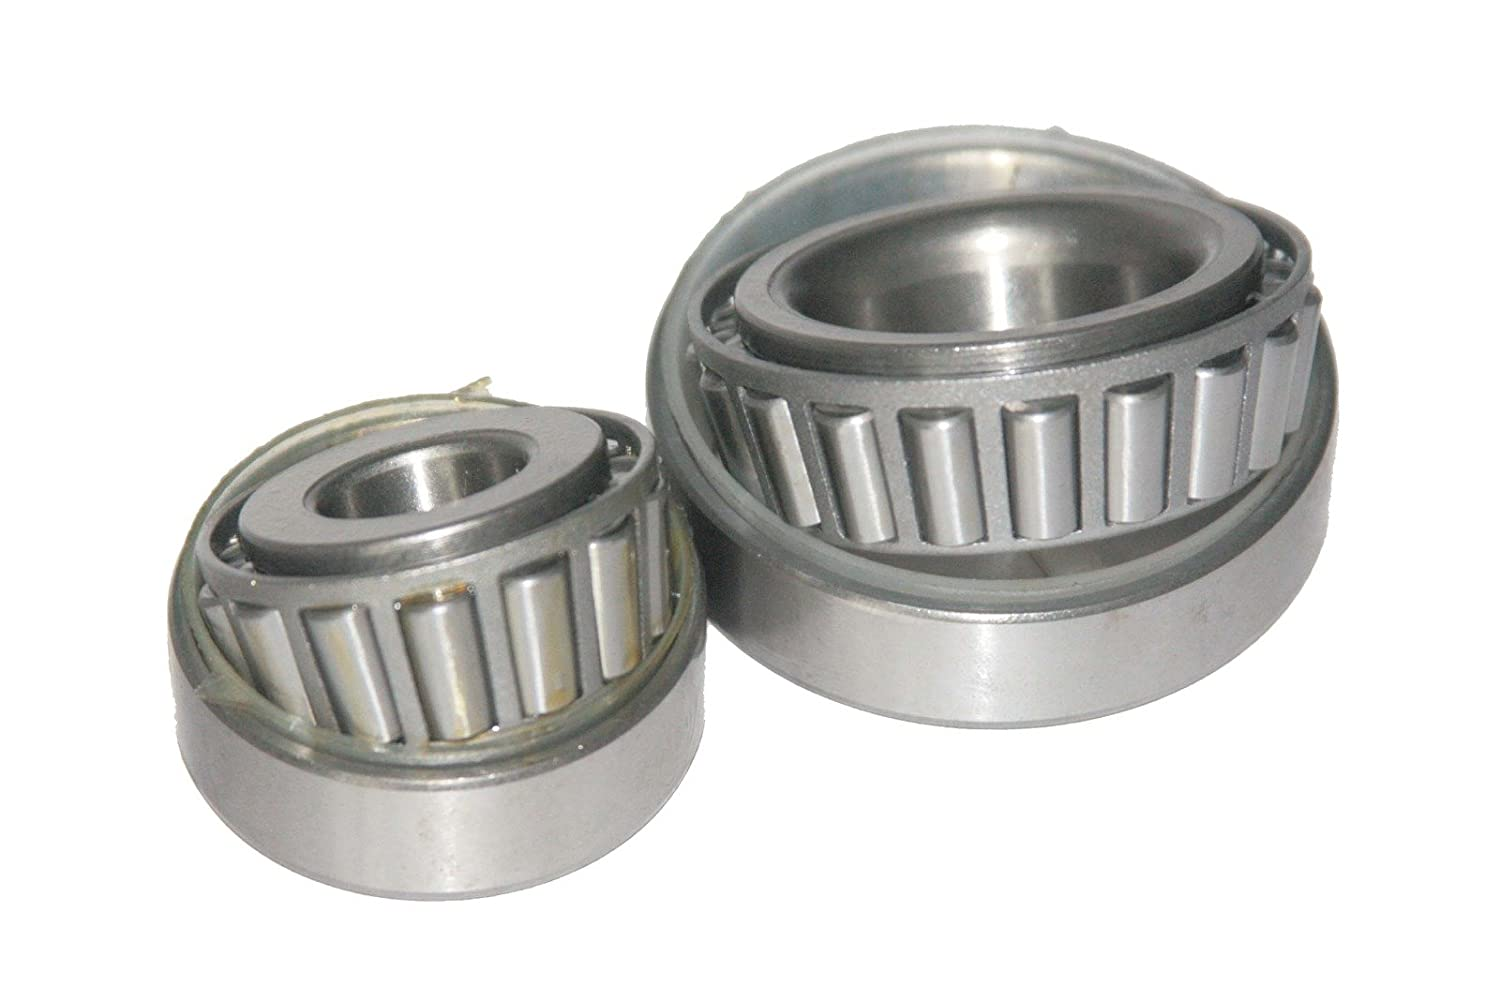 Enfield County 1810416M91 Tractor Front Wheel Bearing Kit For Massey Ferguson 135